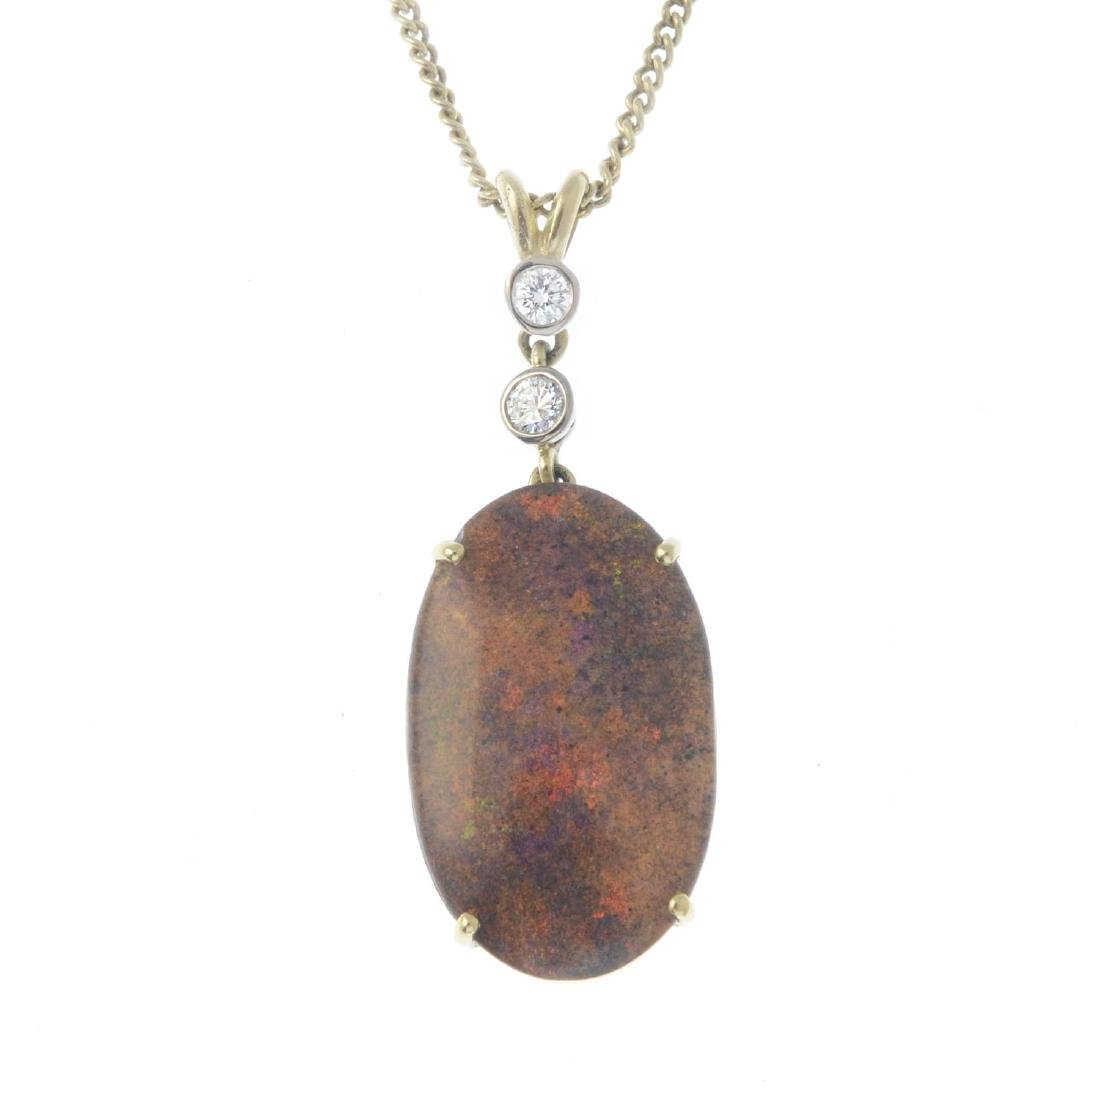 An 18ct gold opal doublet and diamond pendant. The oval